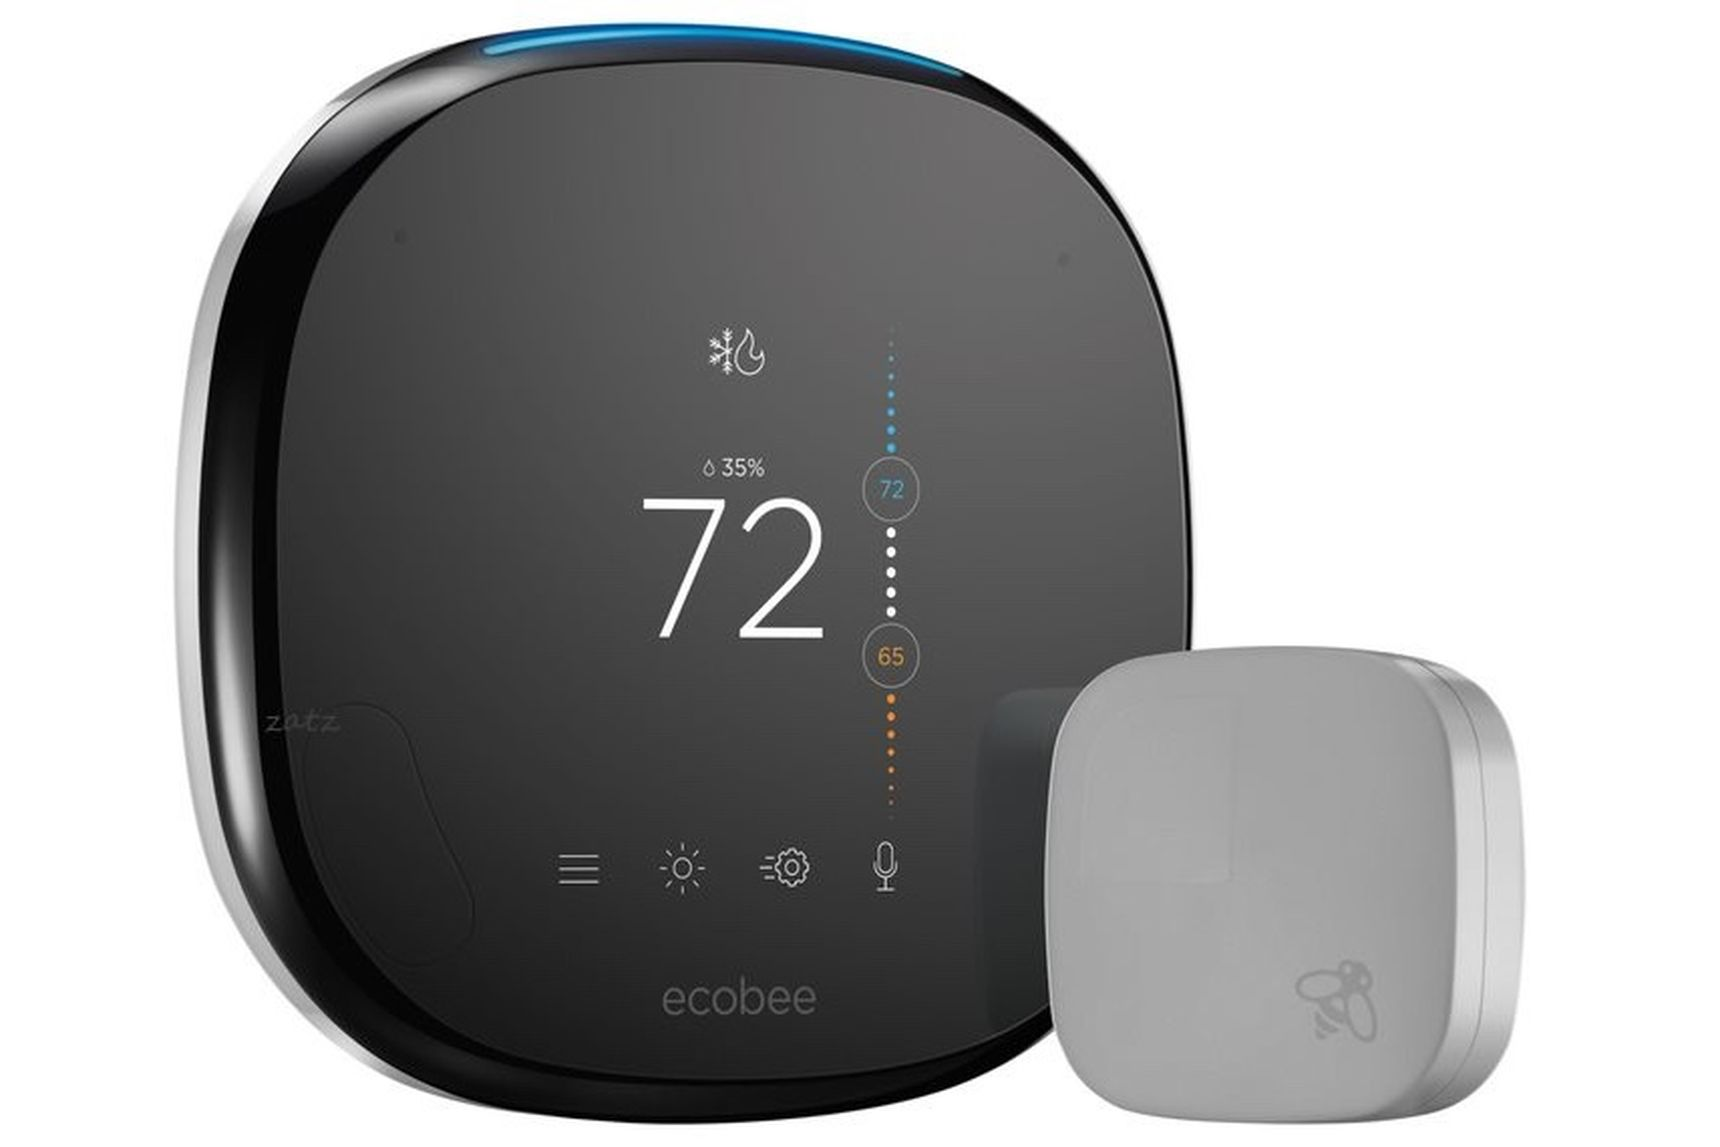 The Ecobee4 HealthKit-Enabled Thermostat Teased Online